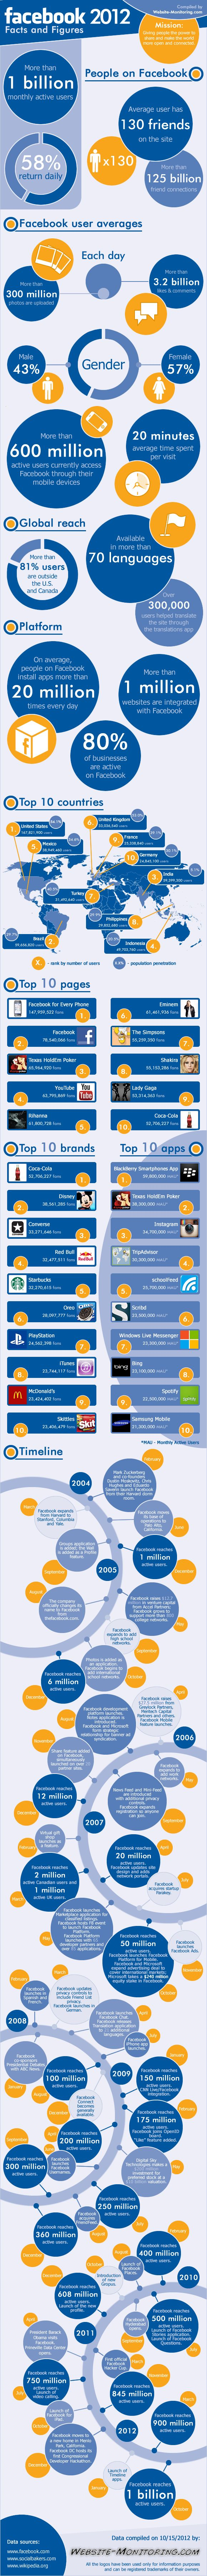 Facebook Facts and Figures 2012 #infographic